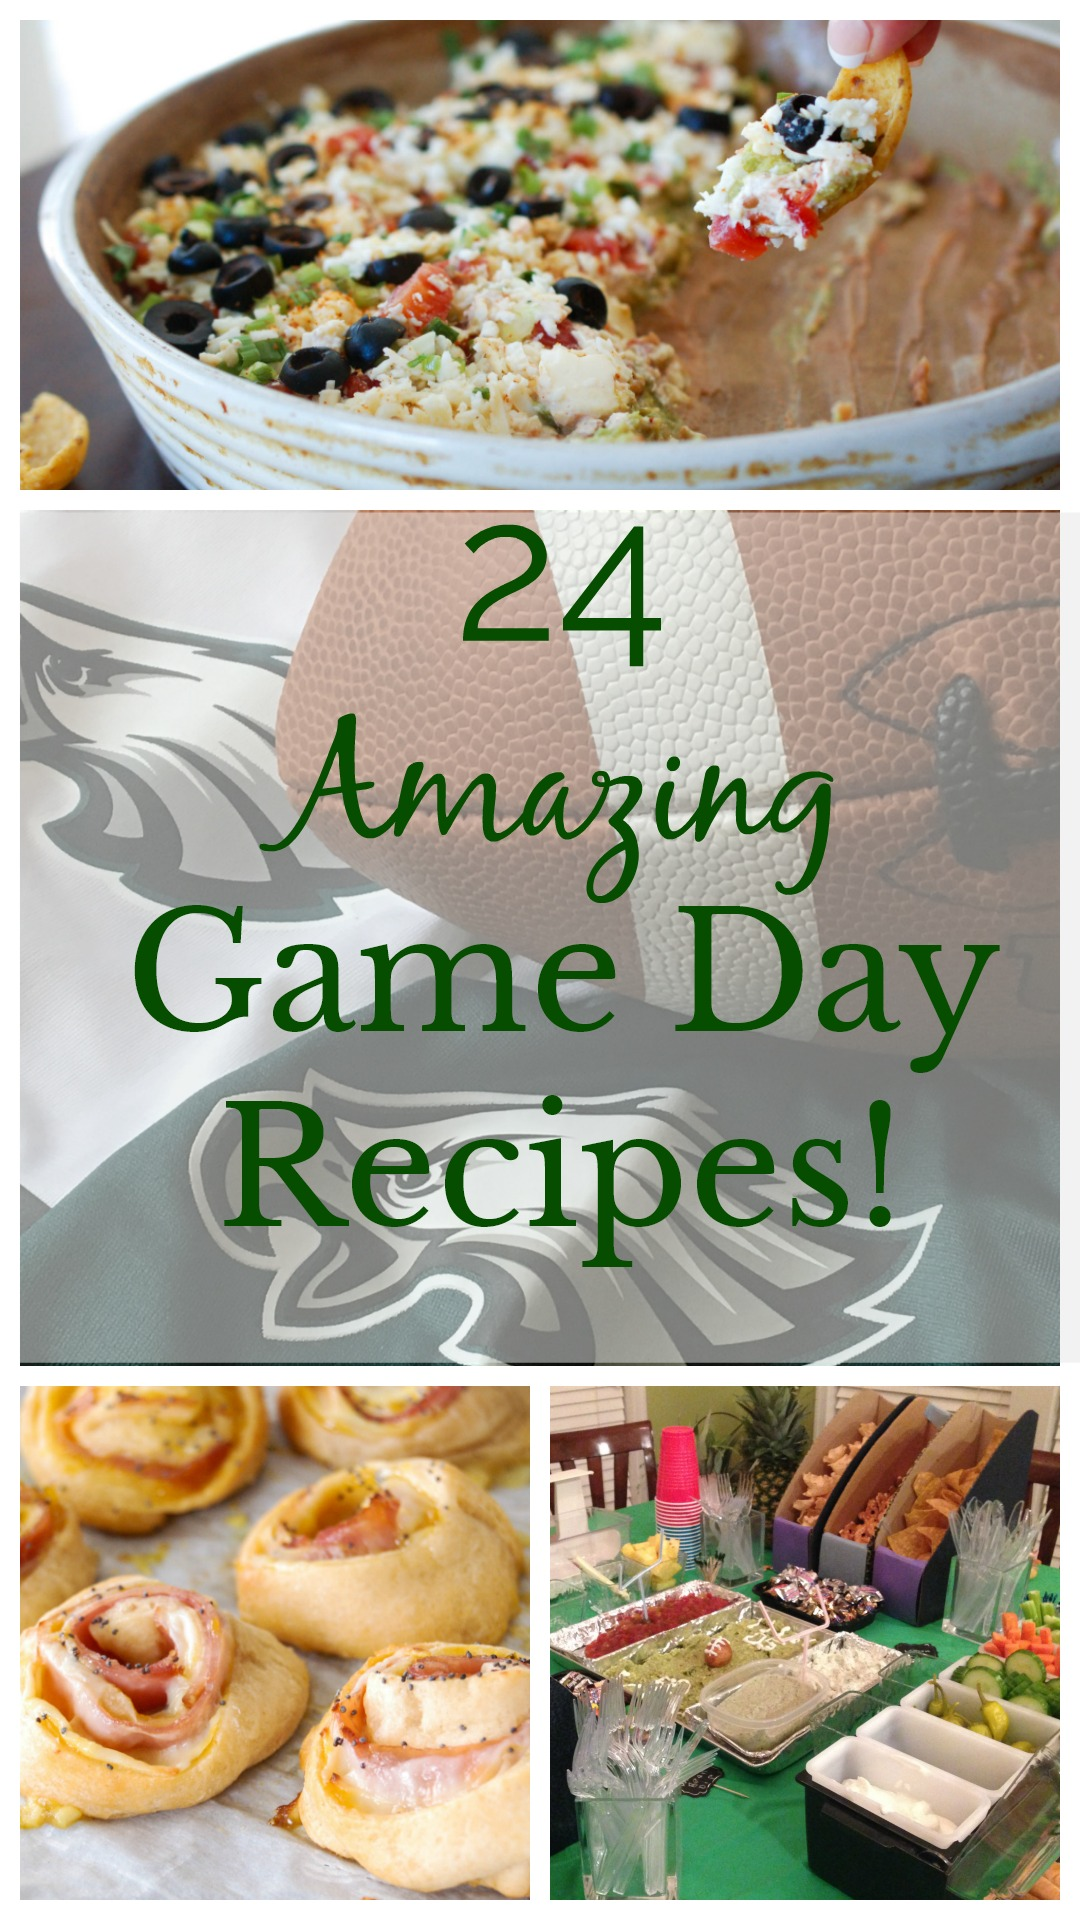 Recipe Roundup- 24 Amazing Game Day Recipes!